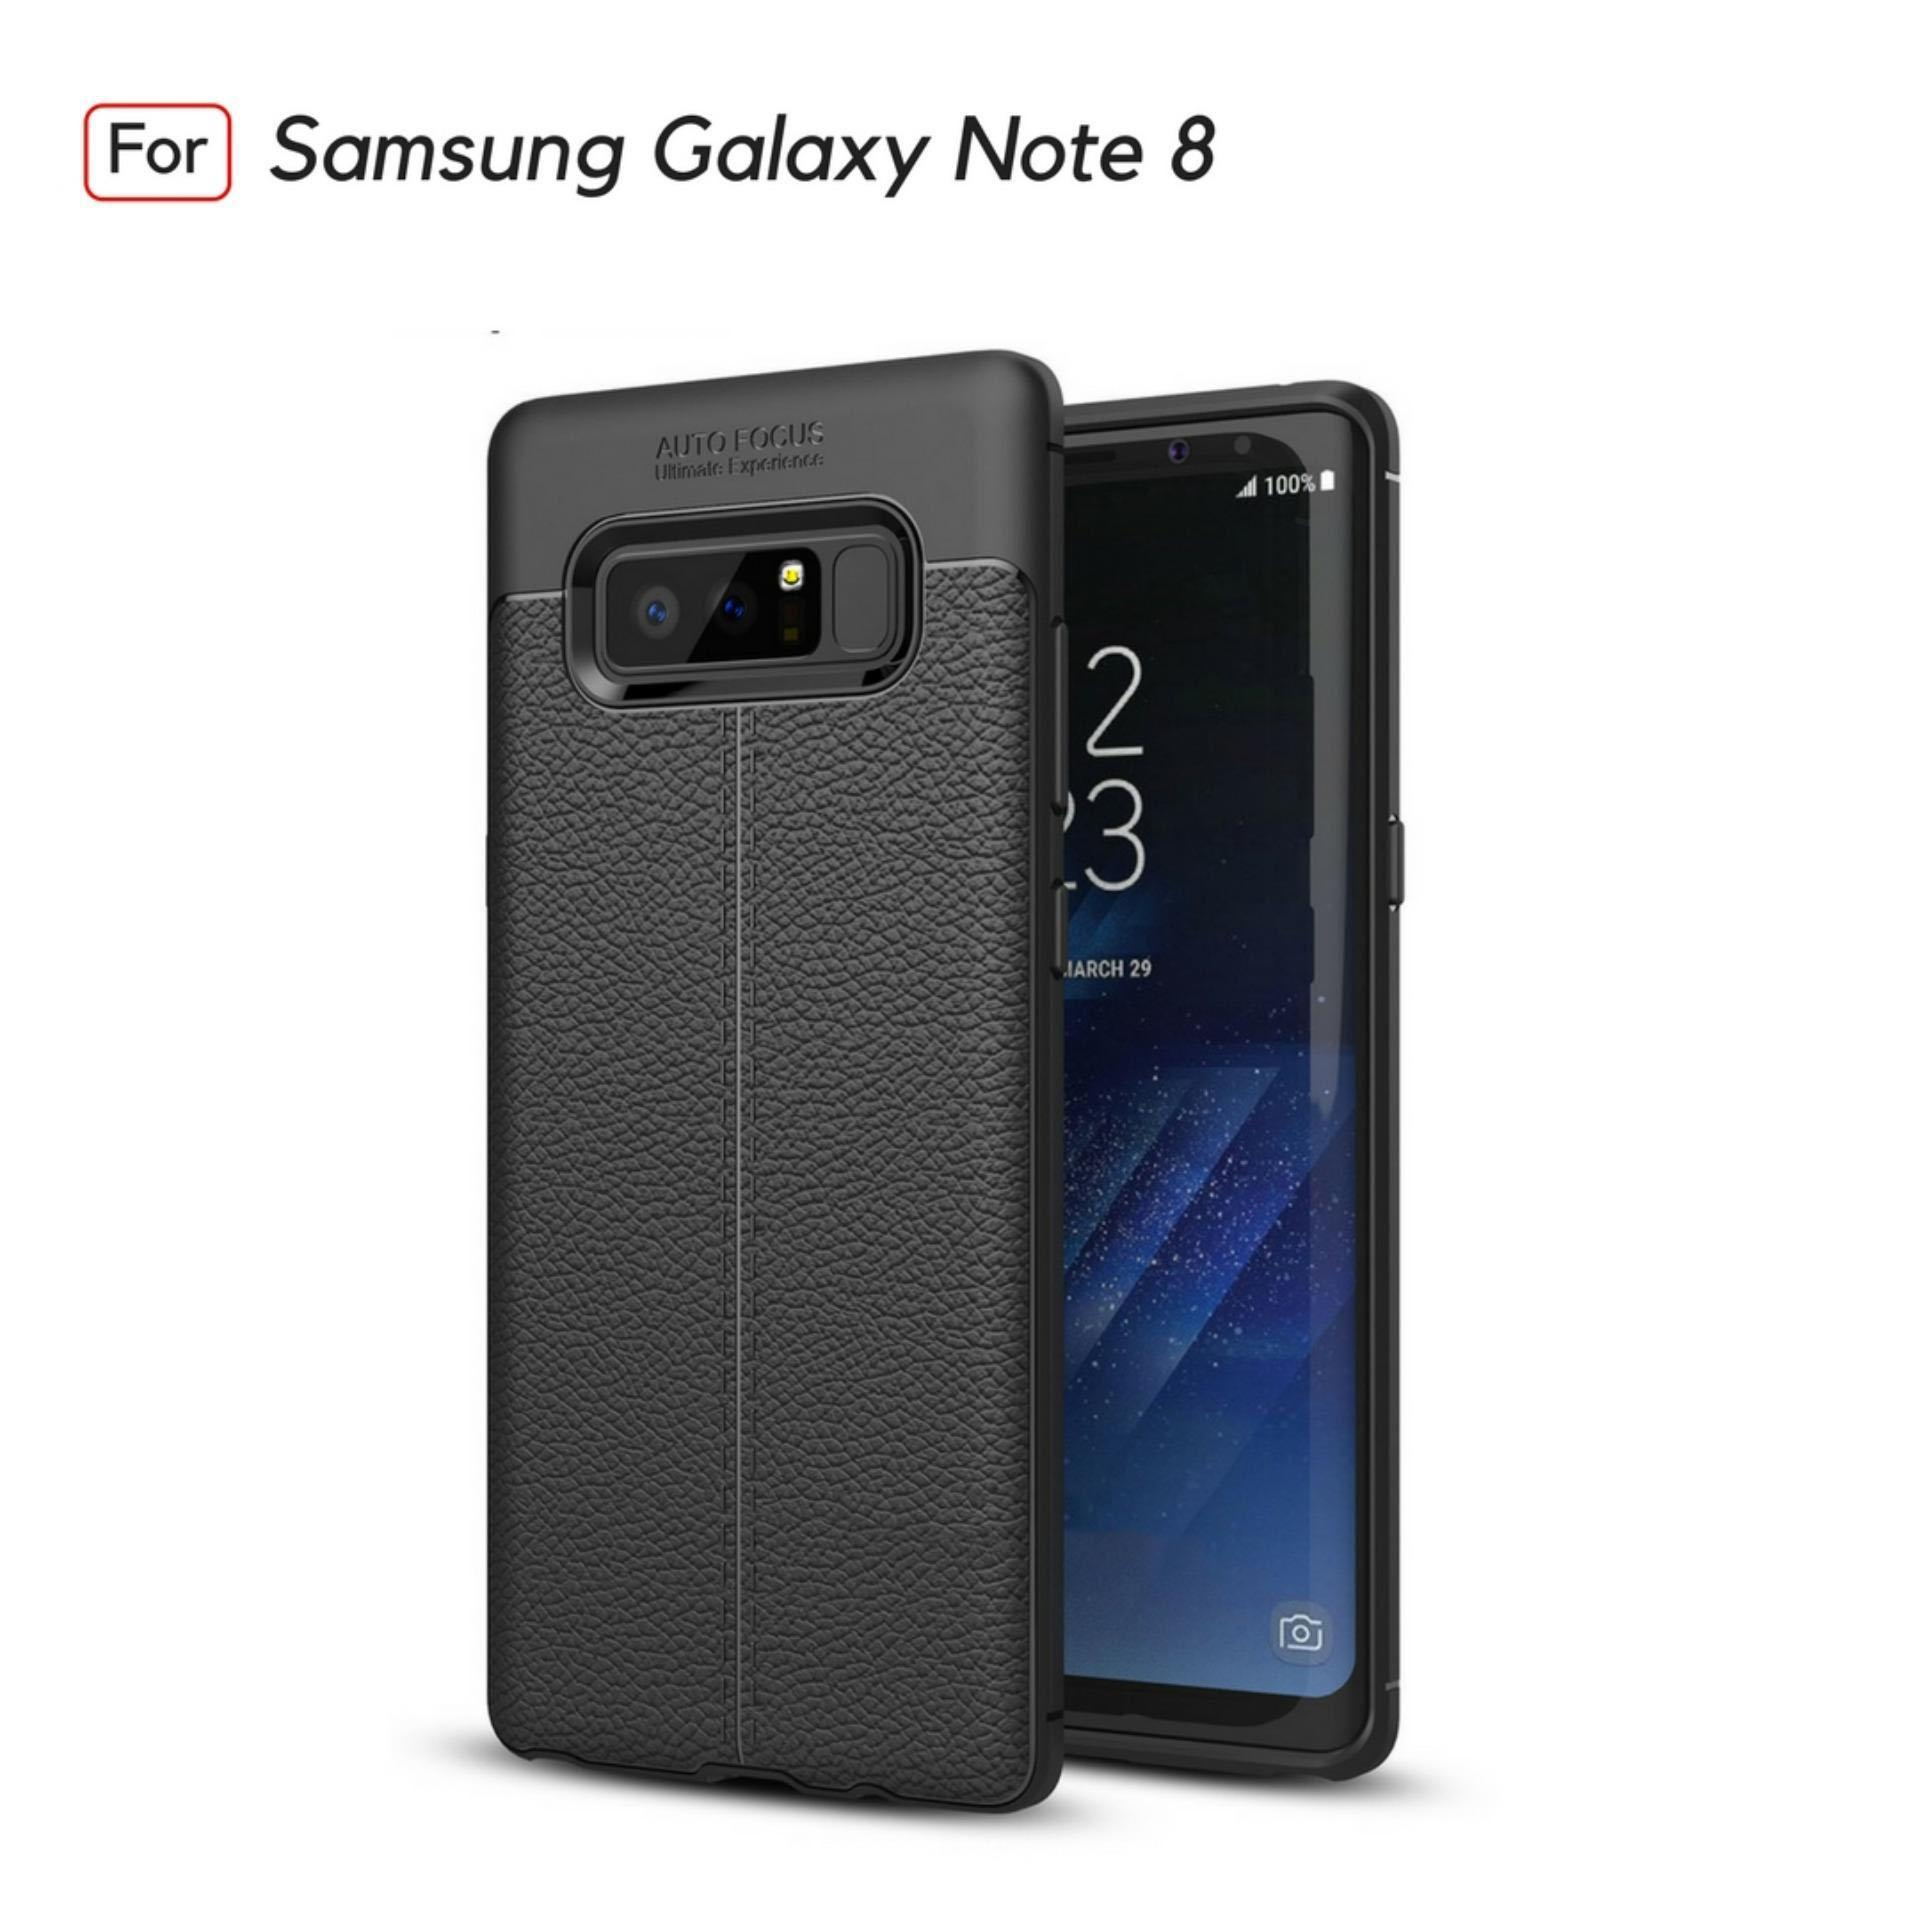 Buy Sell Cheapest Kenzoe Accessories Hp Best Quality Product Deals Transformers Case Standing Vivo Y55 Merah Premium Ultimate Shockproof Leather For Samsung Galaxy Note 8 Black